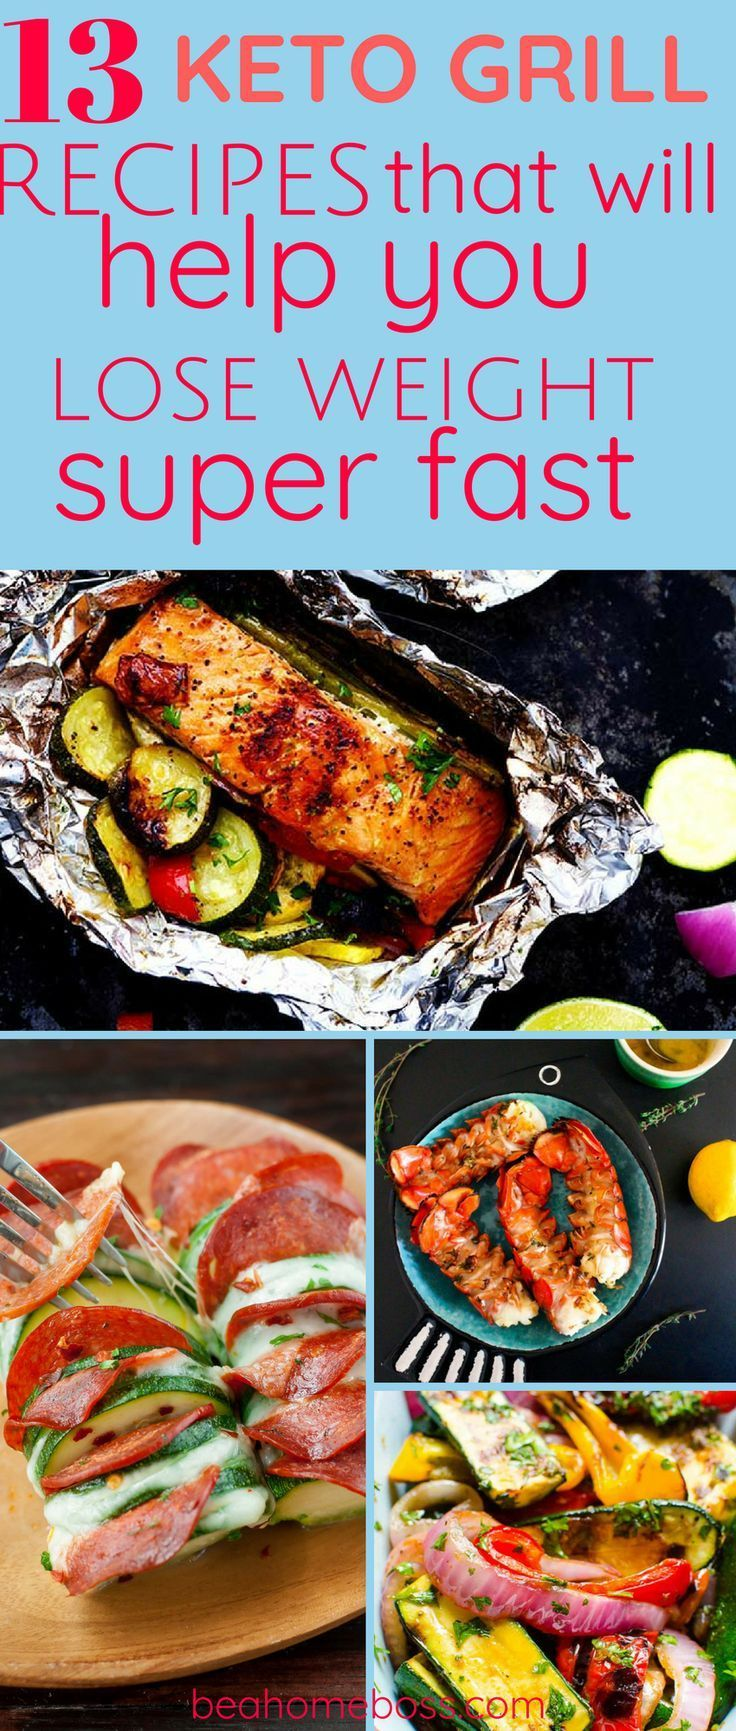 13 Keto Friendly Grill Recipes That Will Help You Lose Weight Fast images